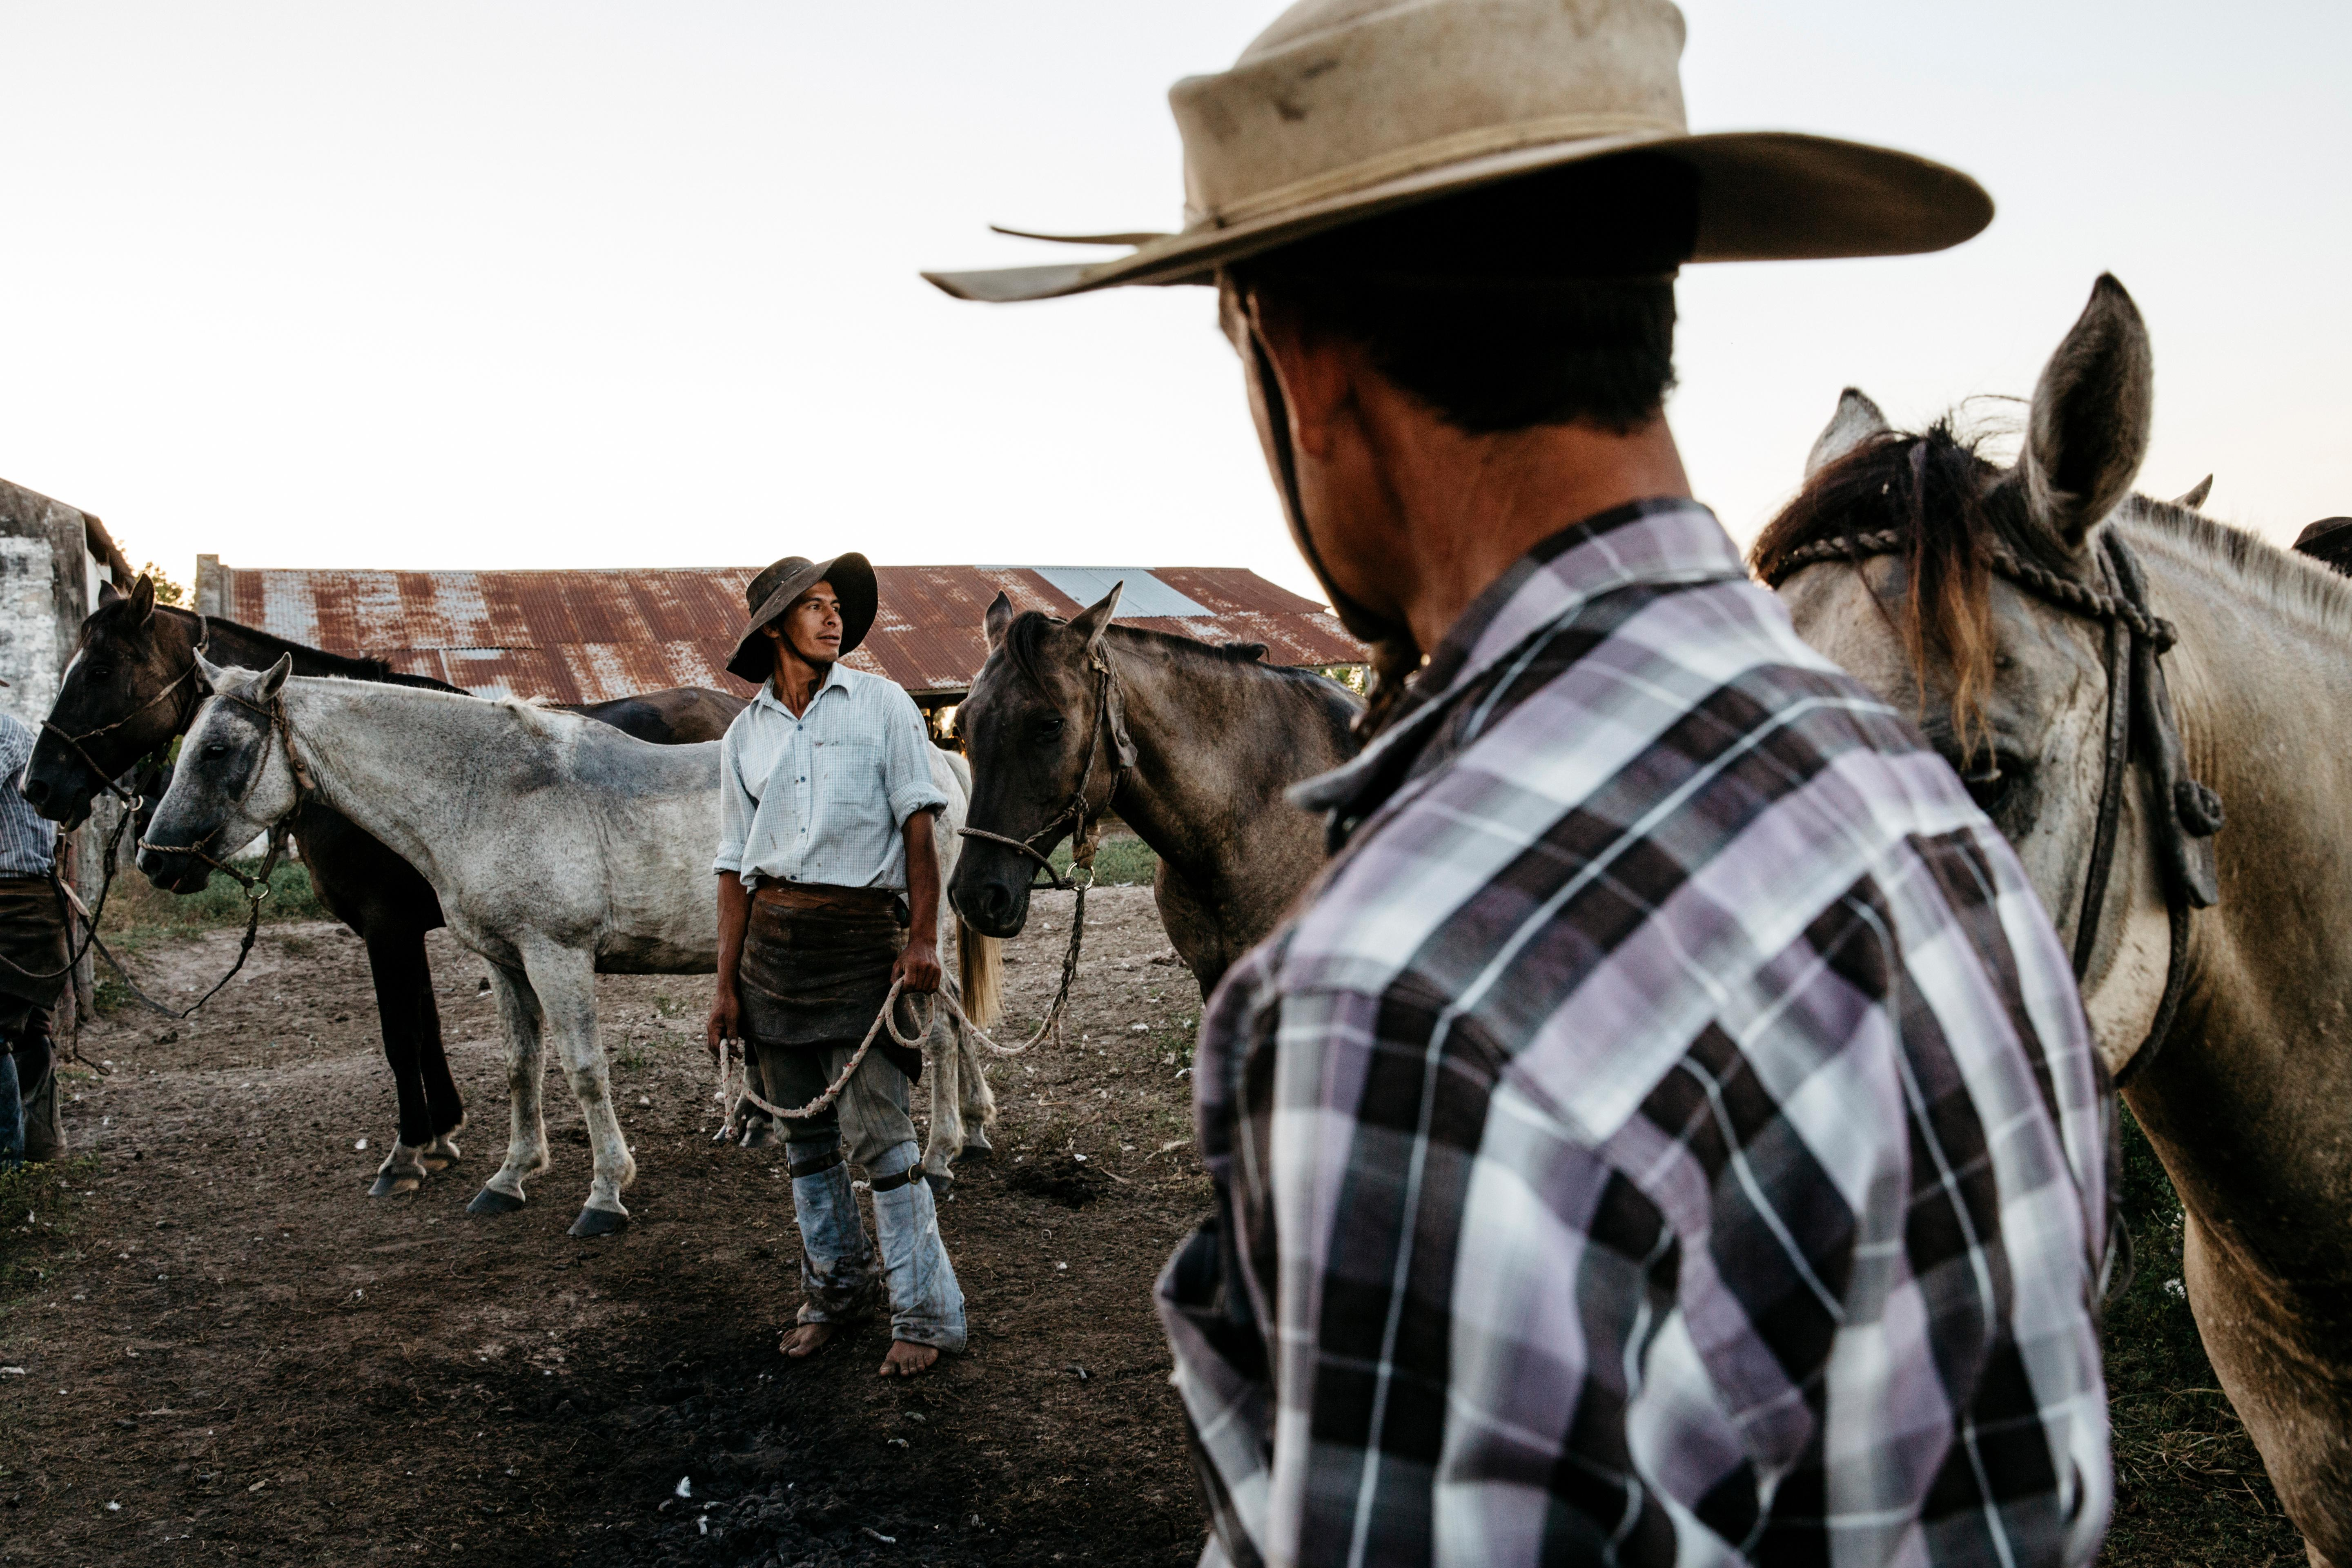 Riding with the gauchos of Argentina: a photo essay